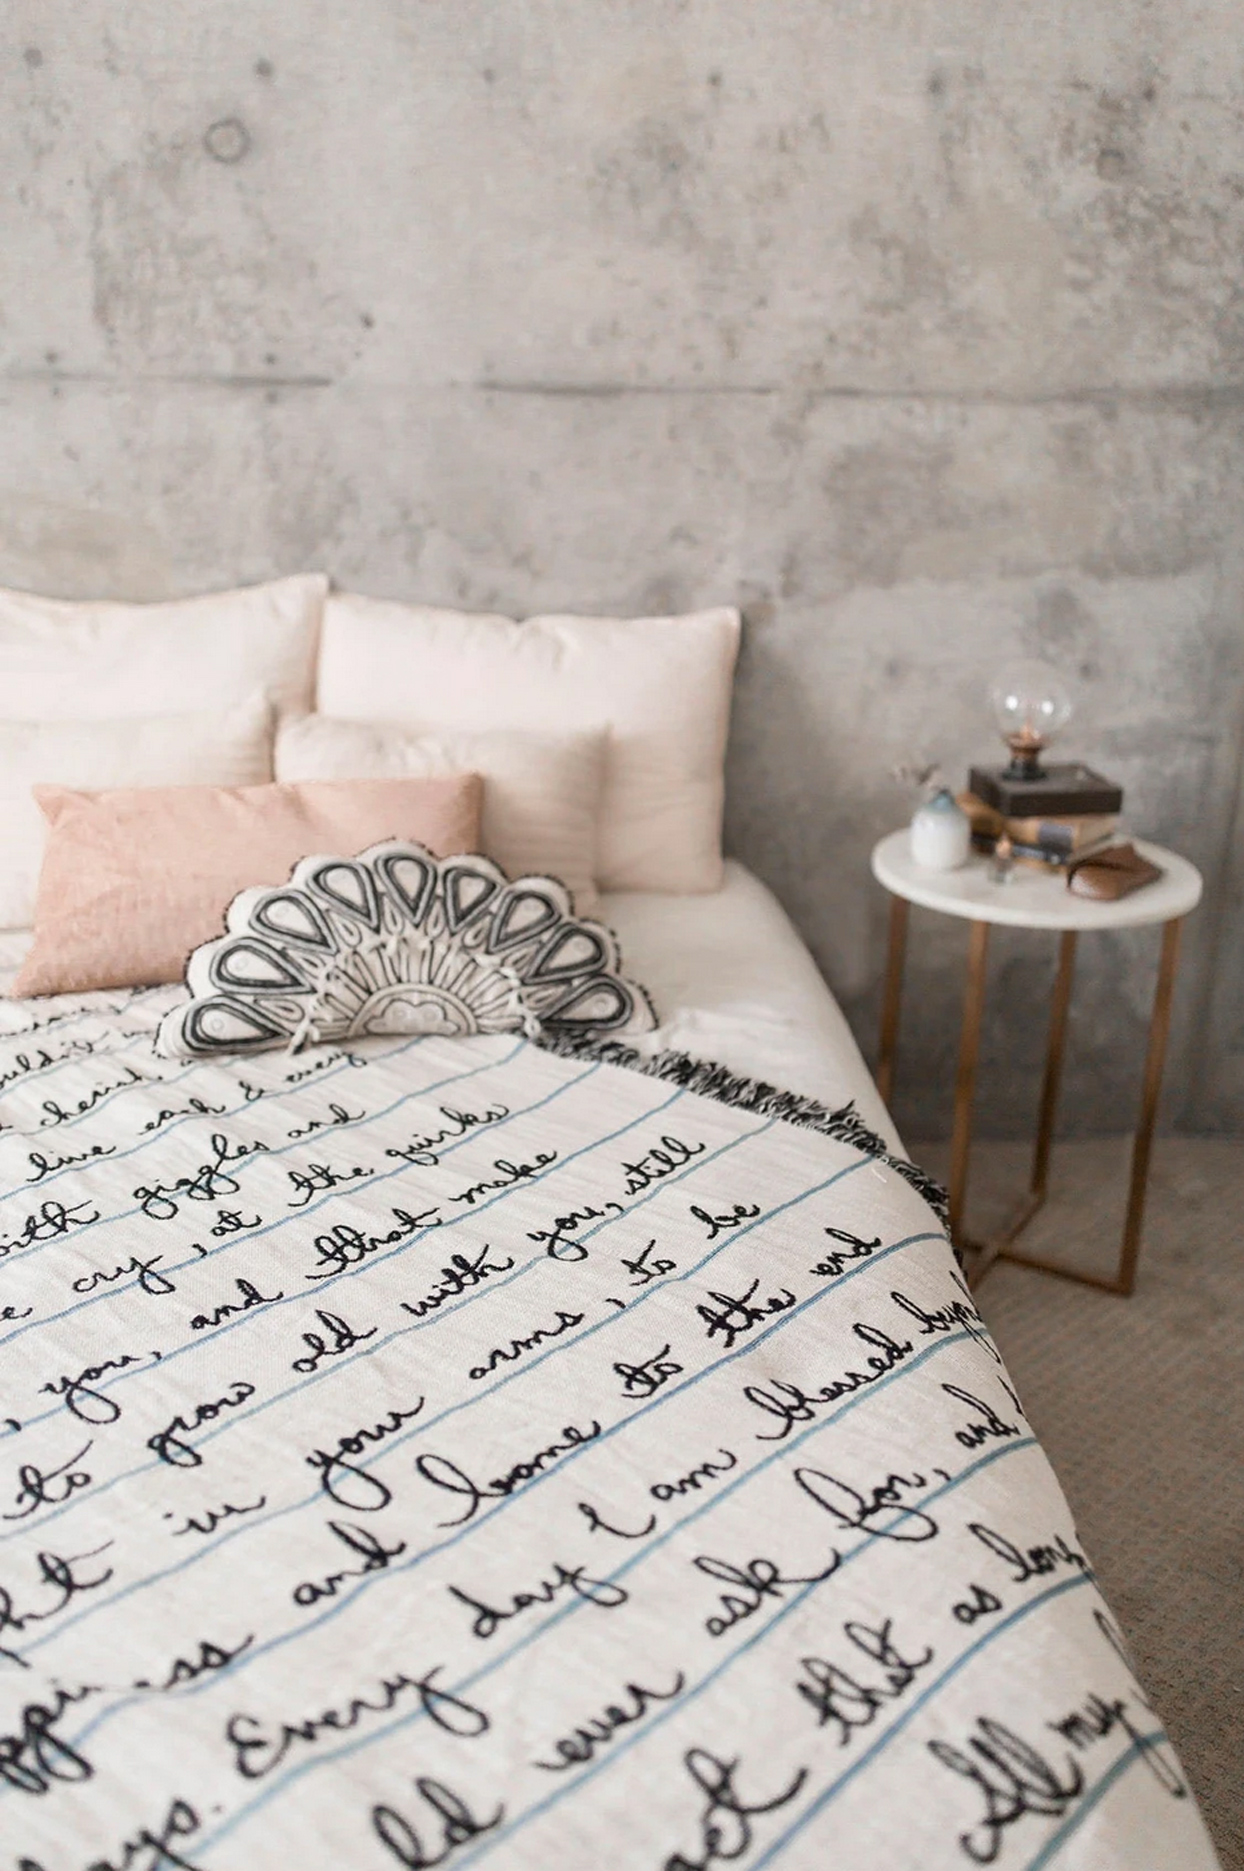 frankie print co blanket with lettering